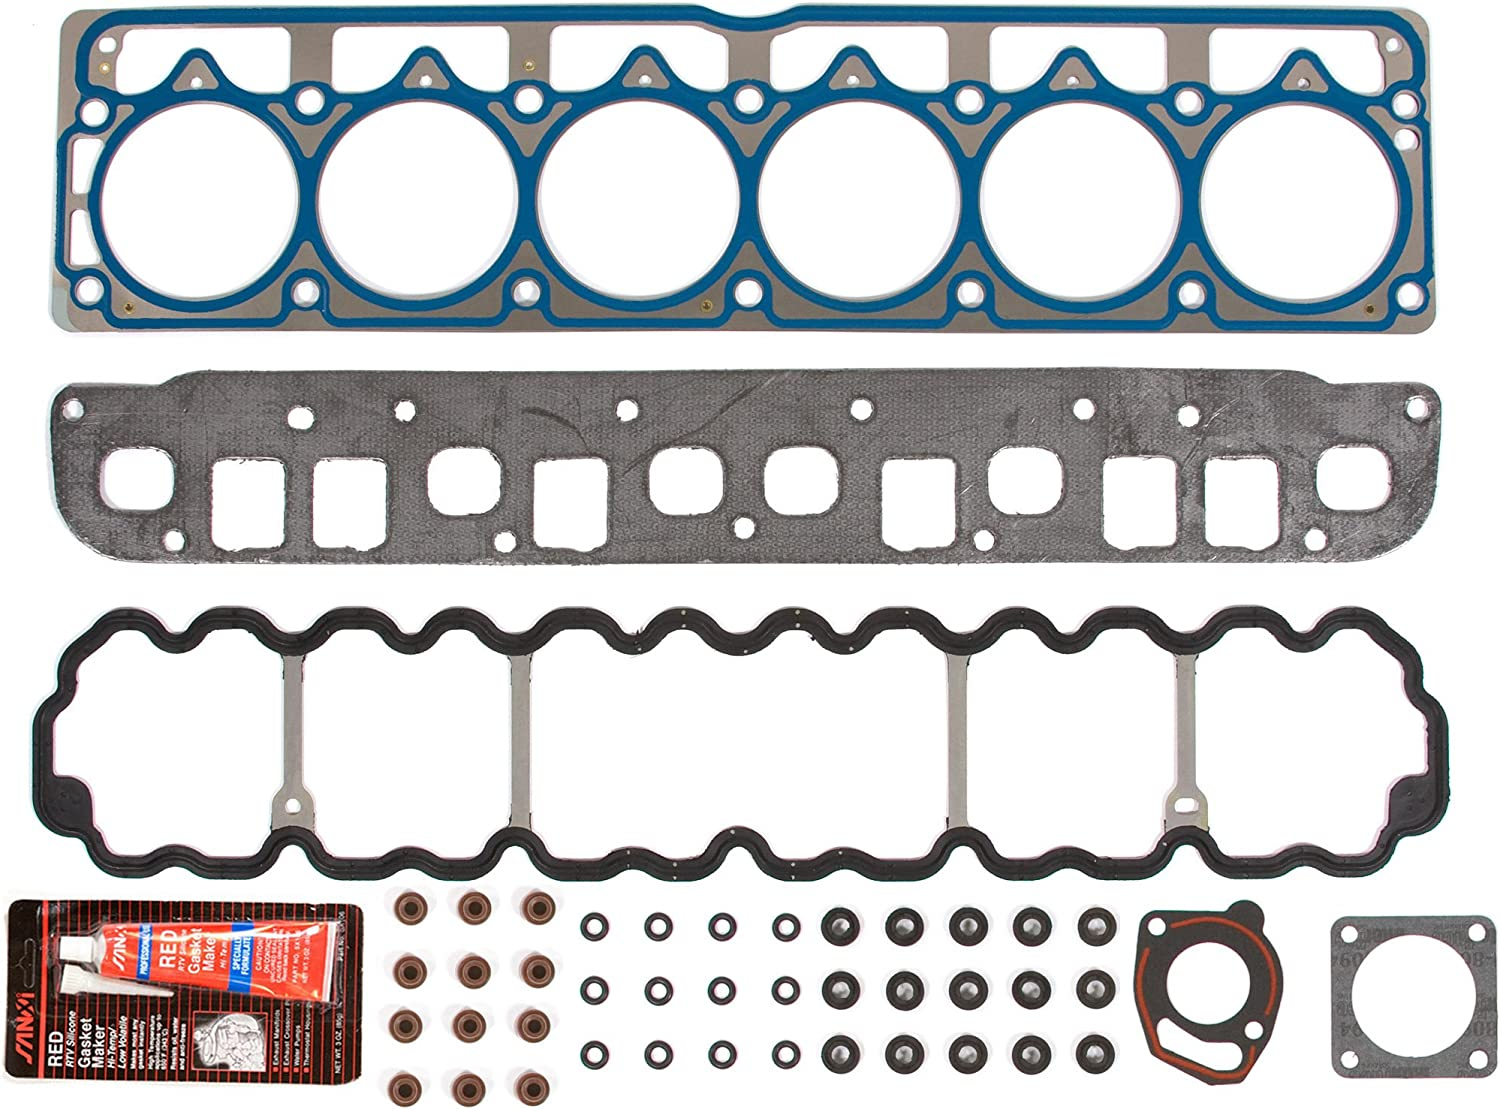 Evergreen 8-10440 Cylinder Head Gasket Set